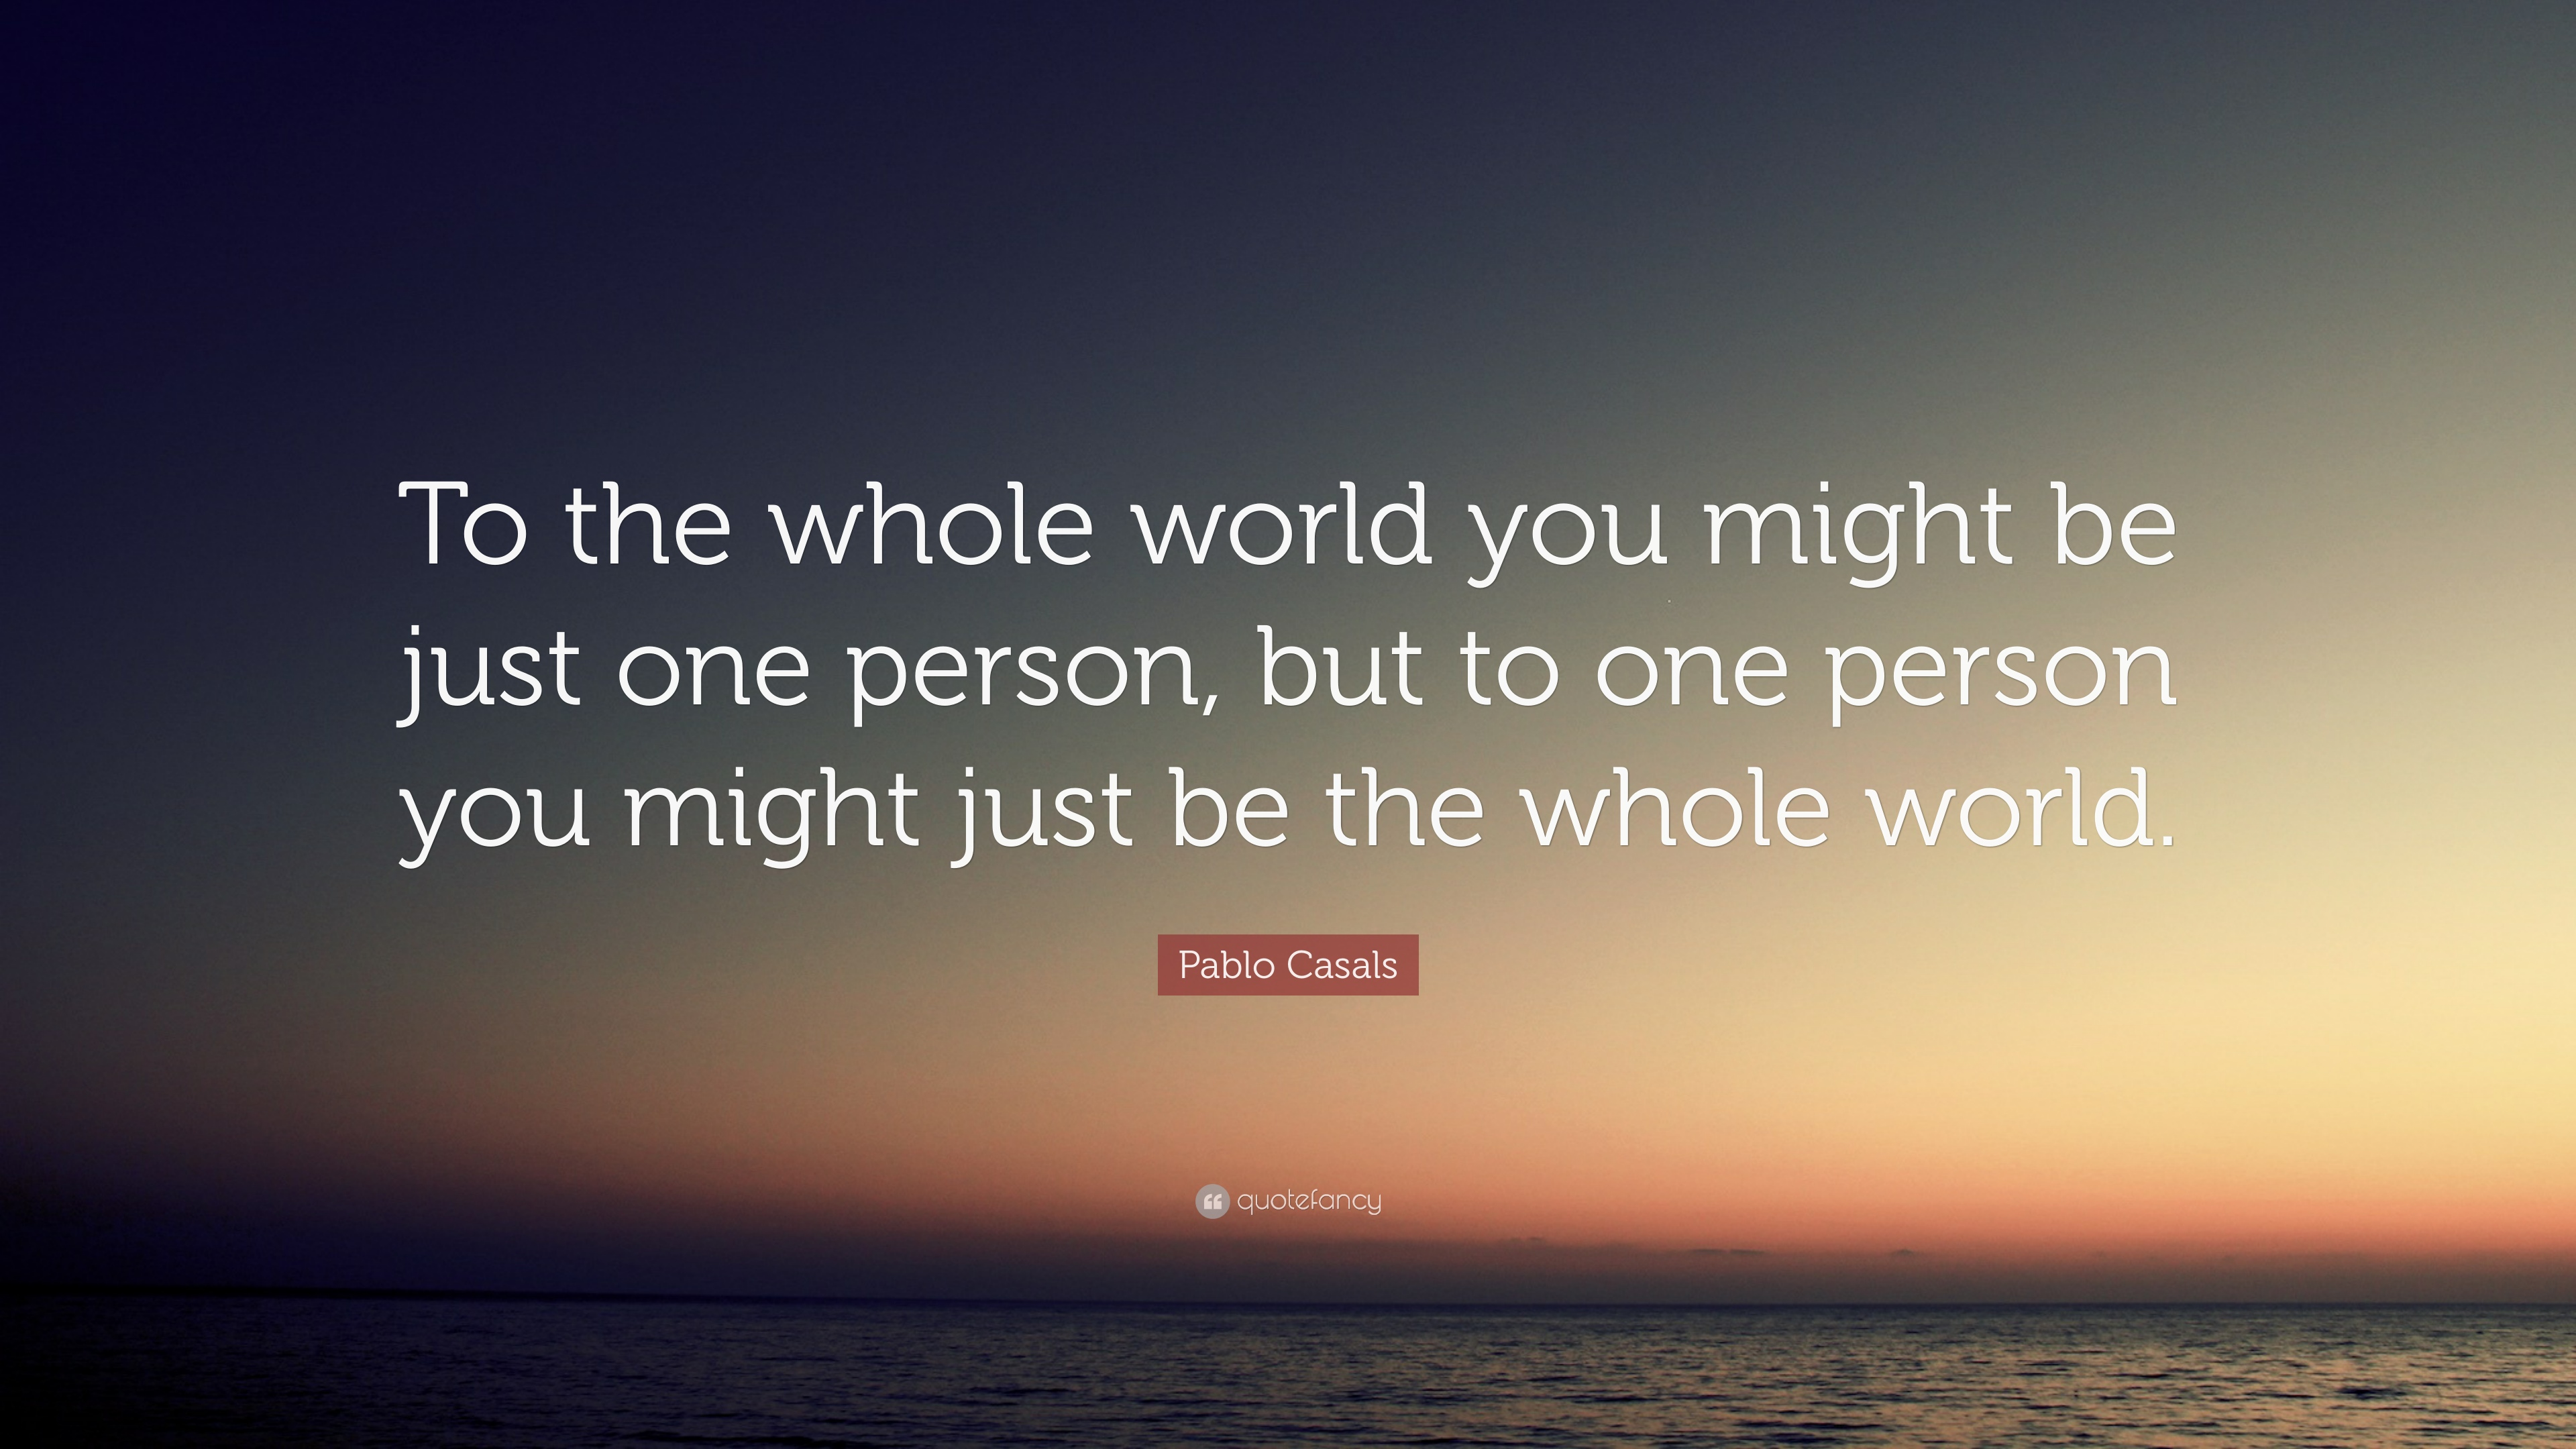 Pablo Casals Quote To The Whole World You Might Be Just One Person